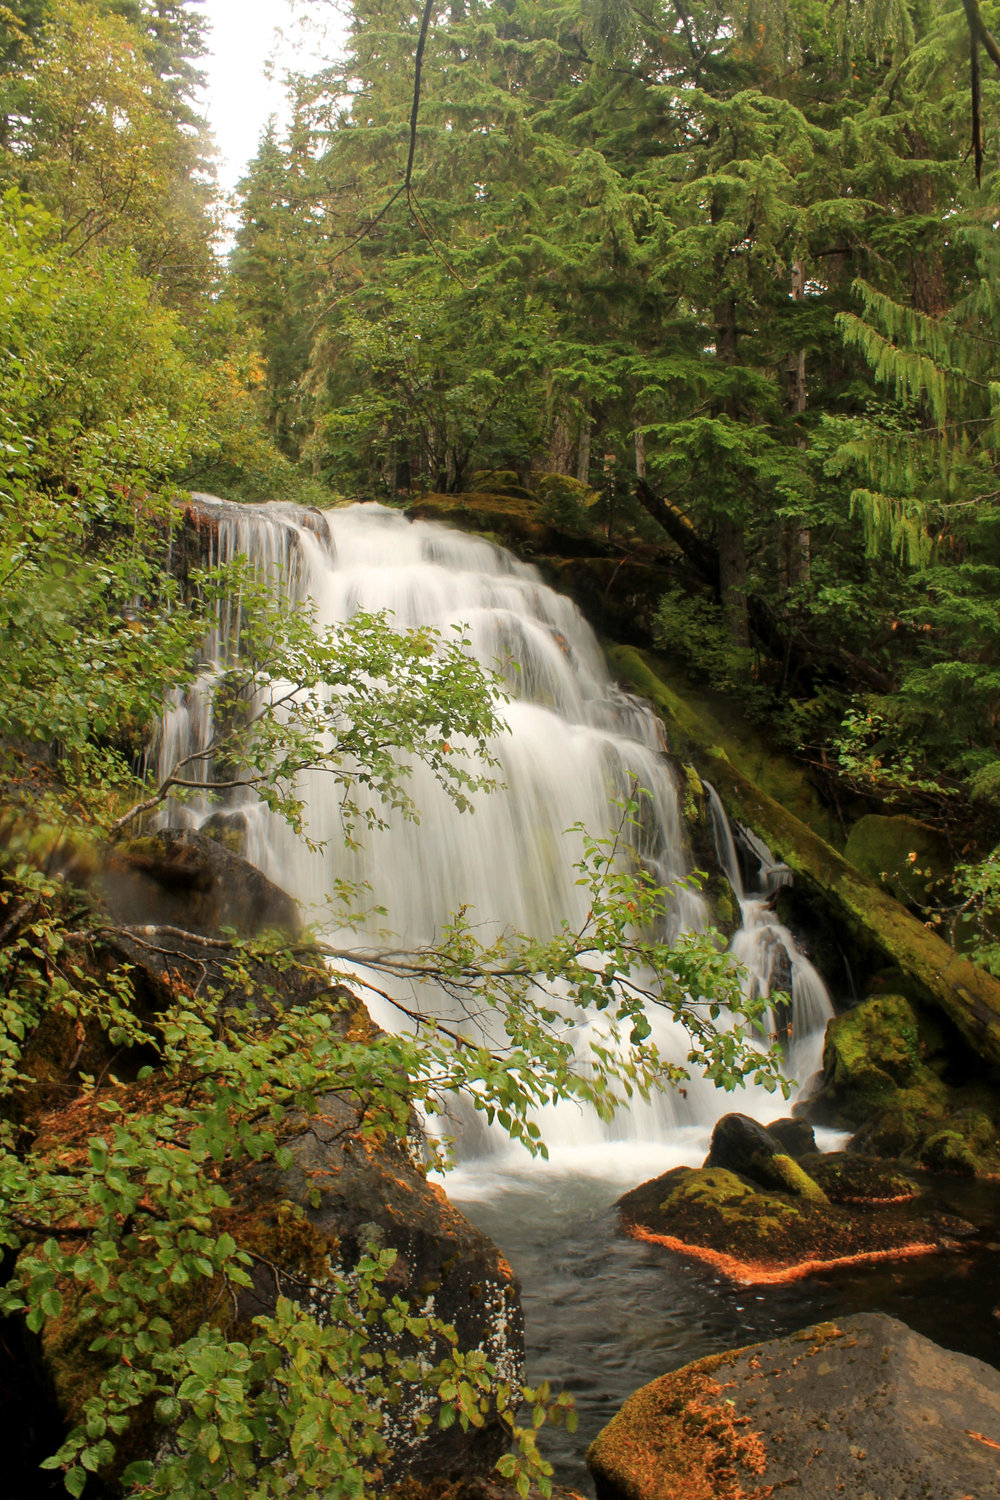 The first tier of Breitenbush Cascades, a multi-tiered waterfall on the North Fork of the North Fork of the Breitenbush River.